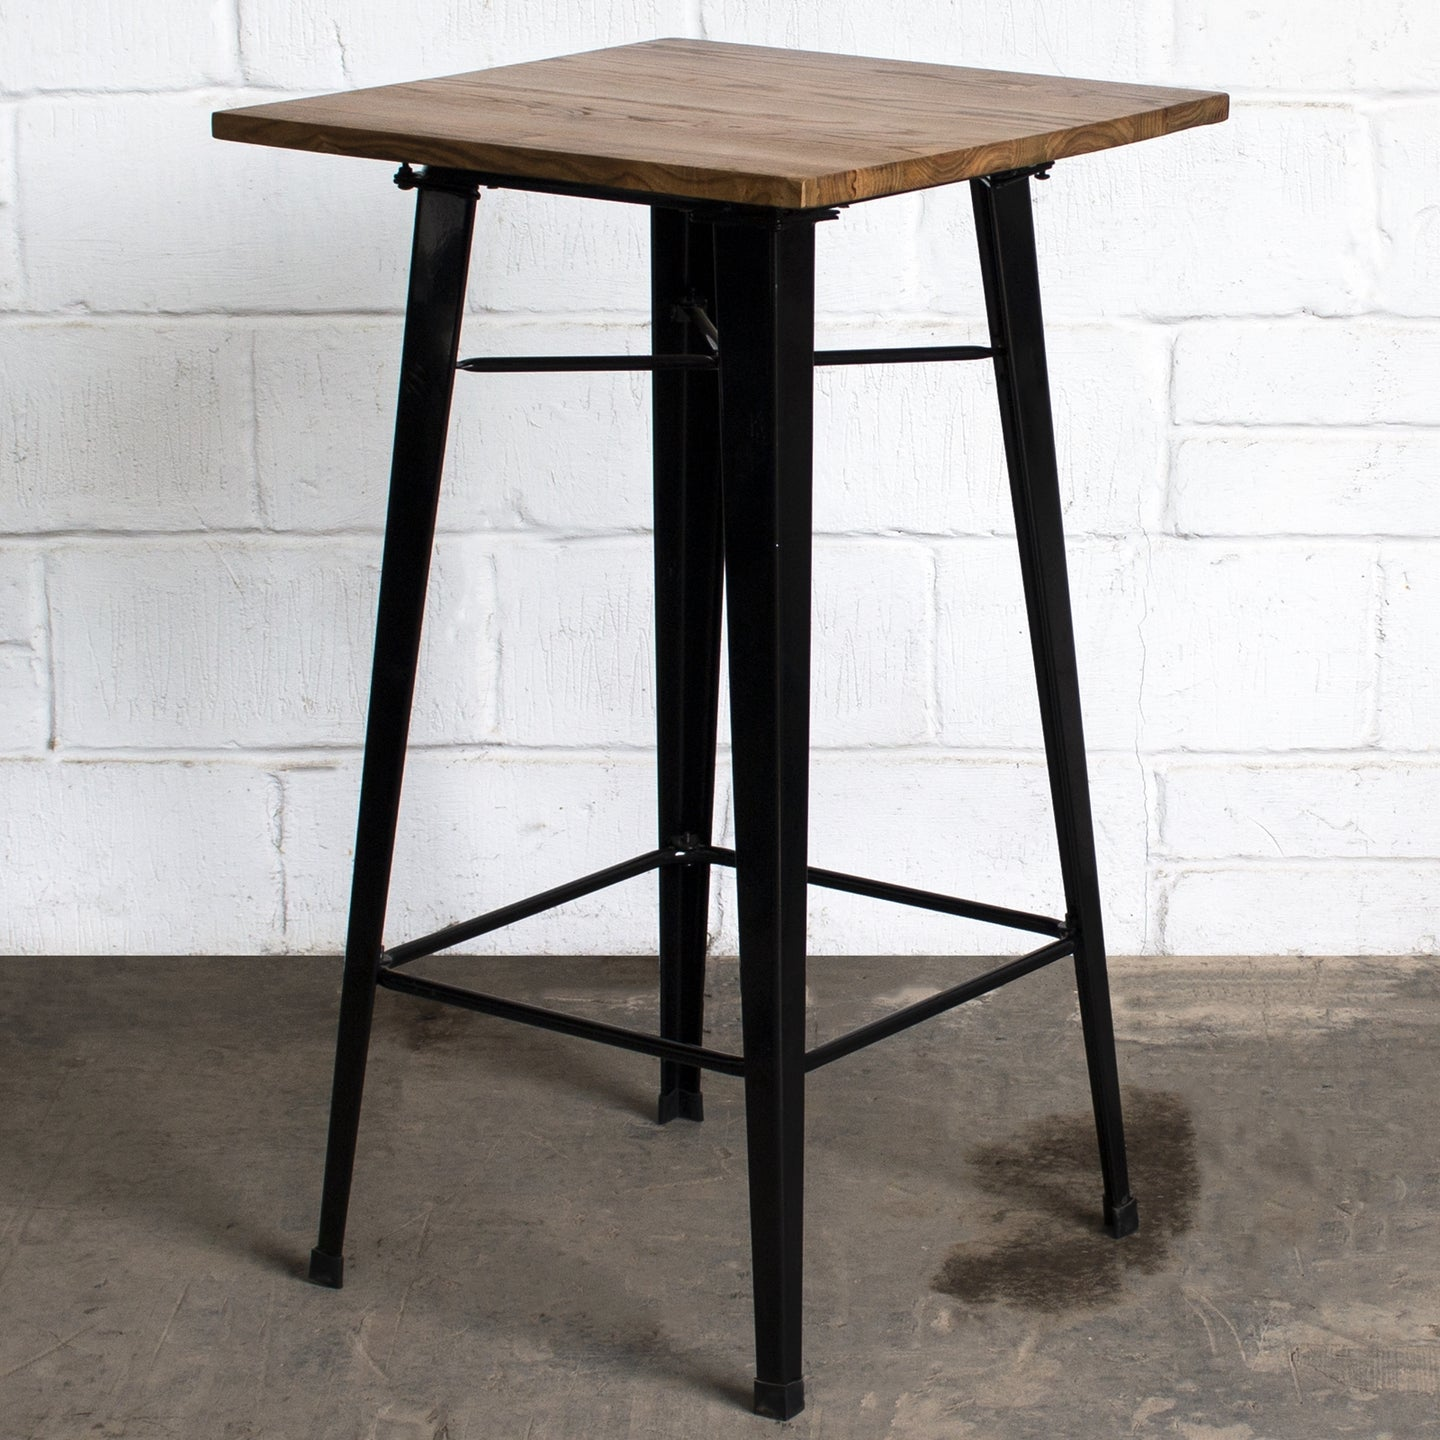 3PC Lodi Table & Soranzo Bar Stool Set - Black